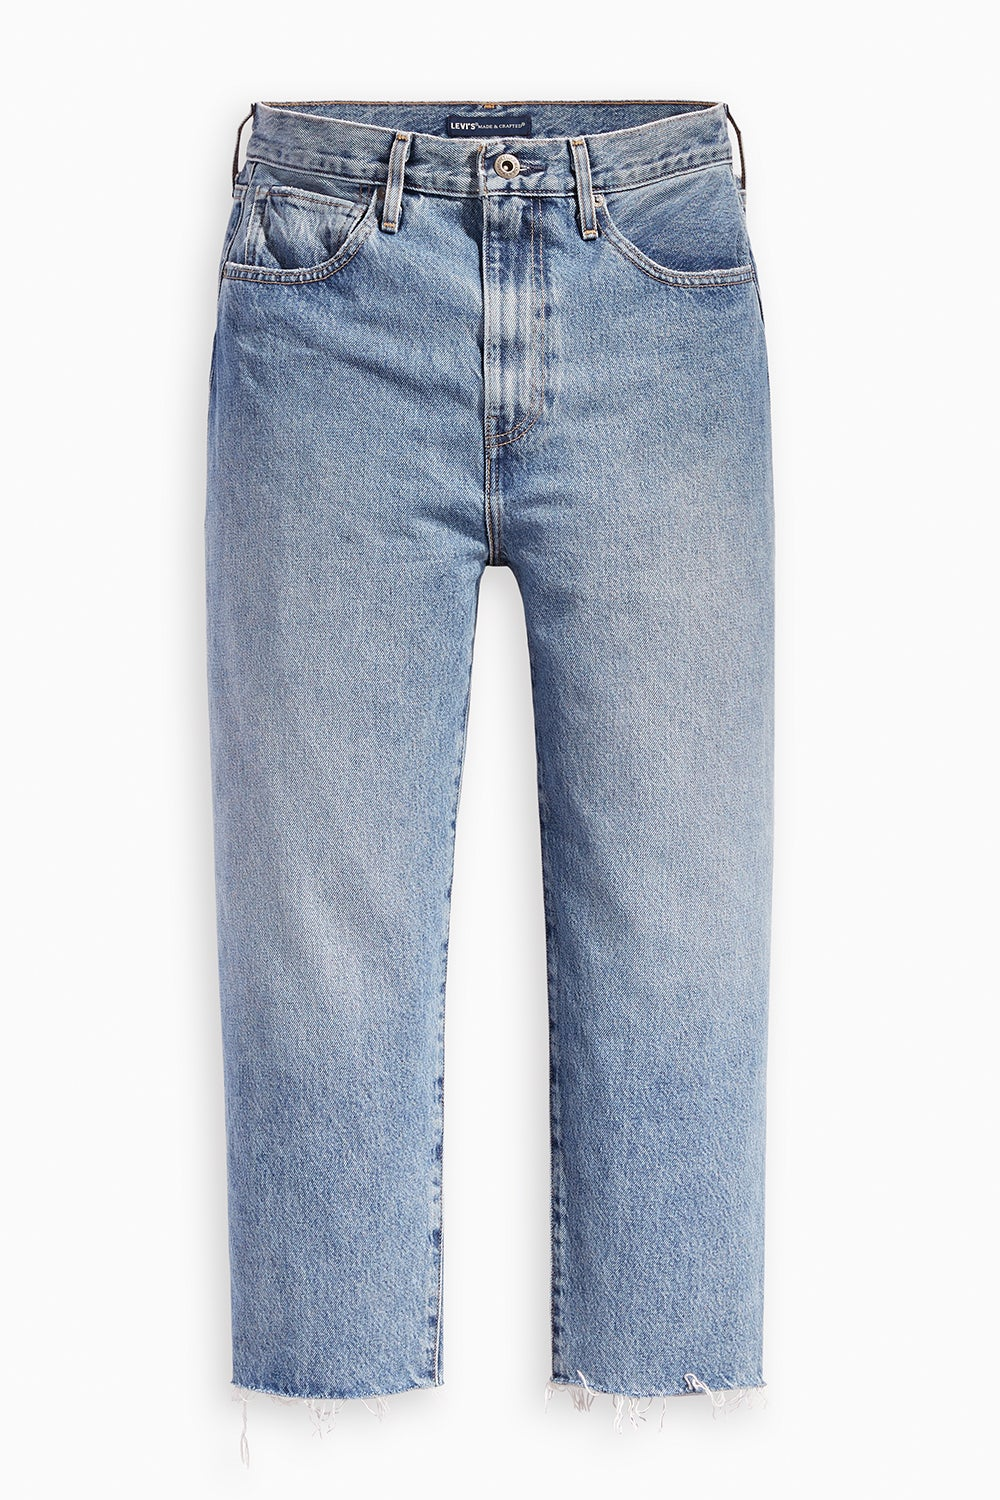 Levi's Made and Crafted Barrel Jeans Palm Blues